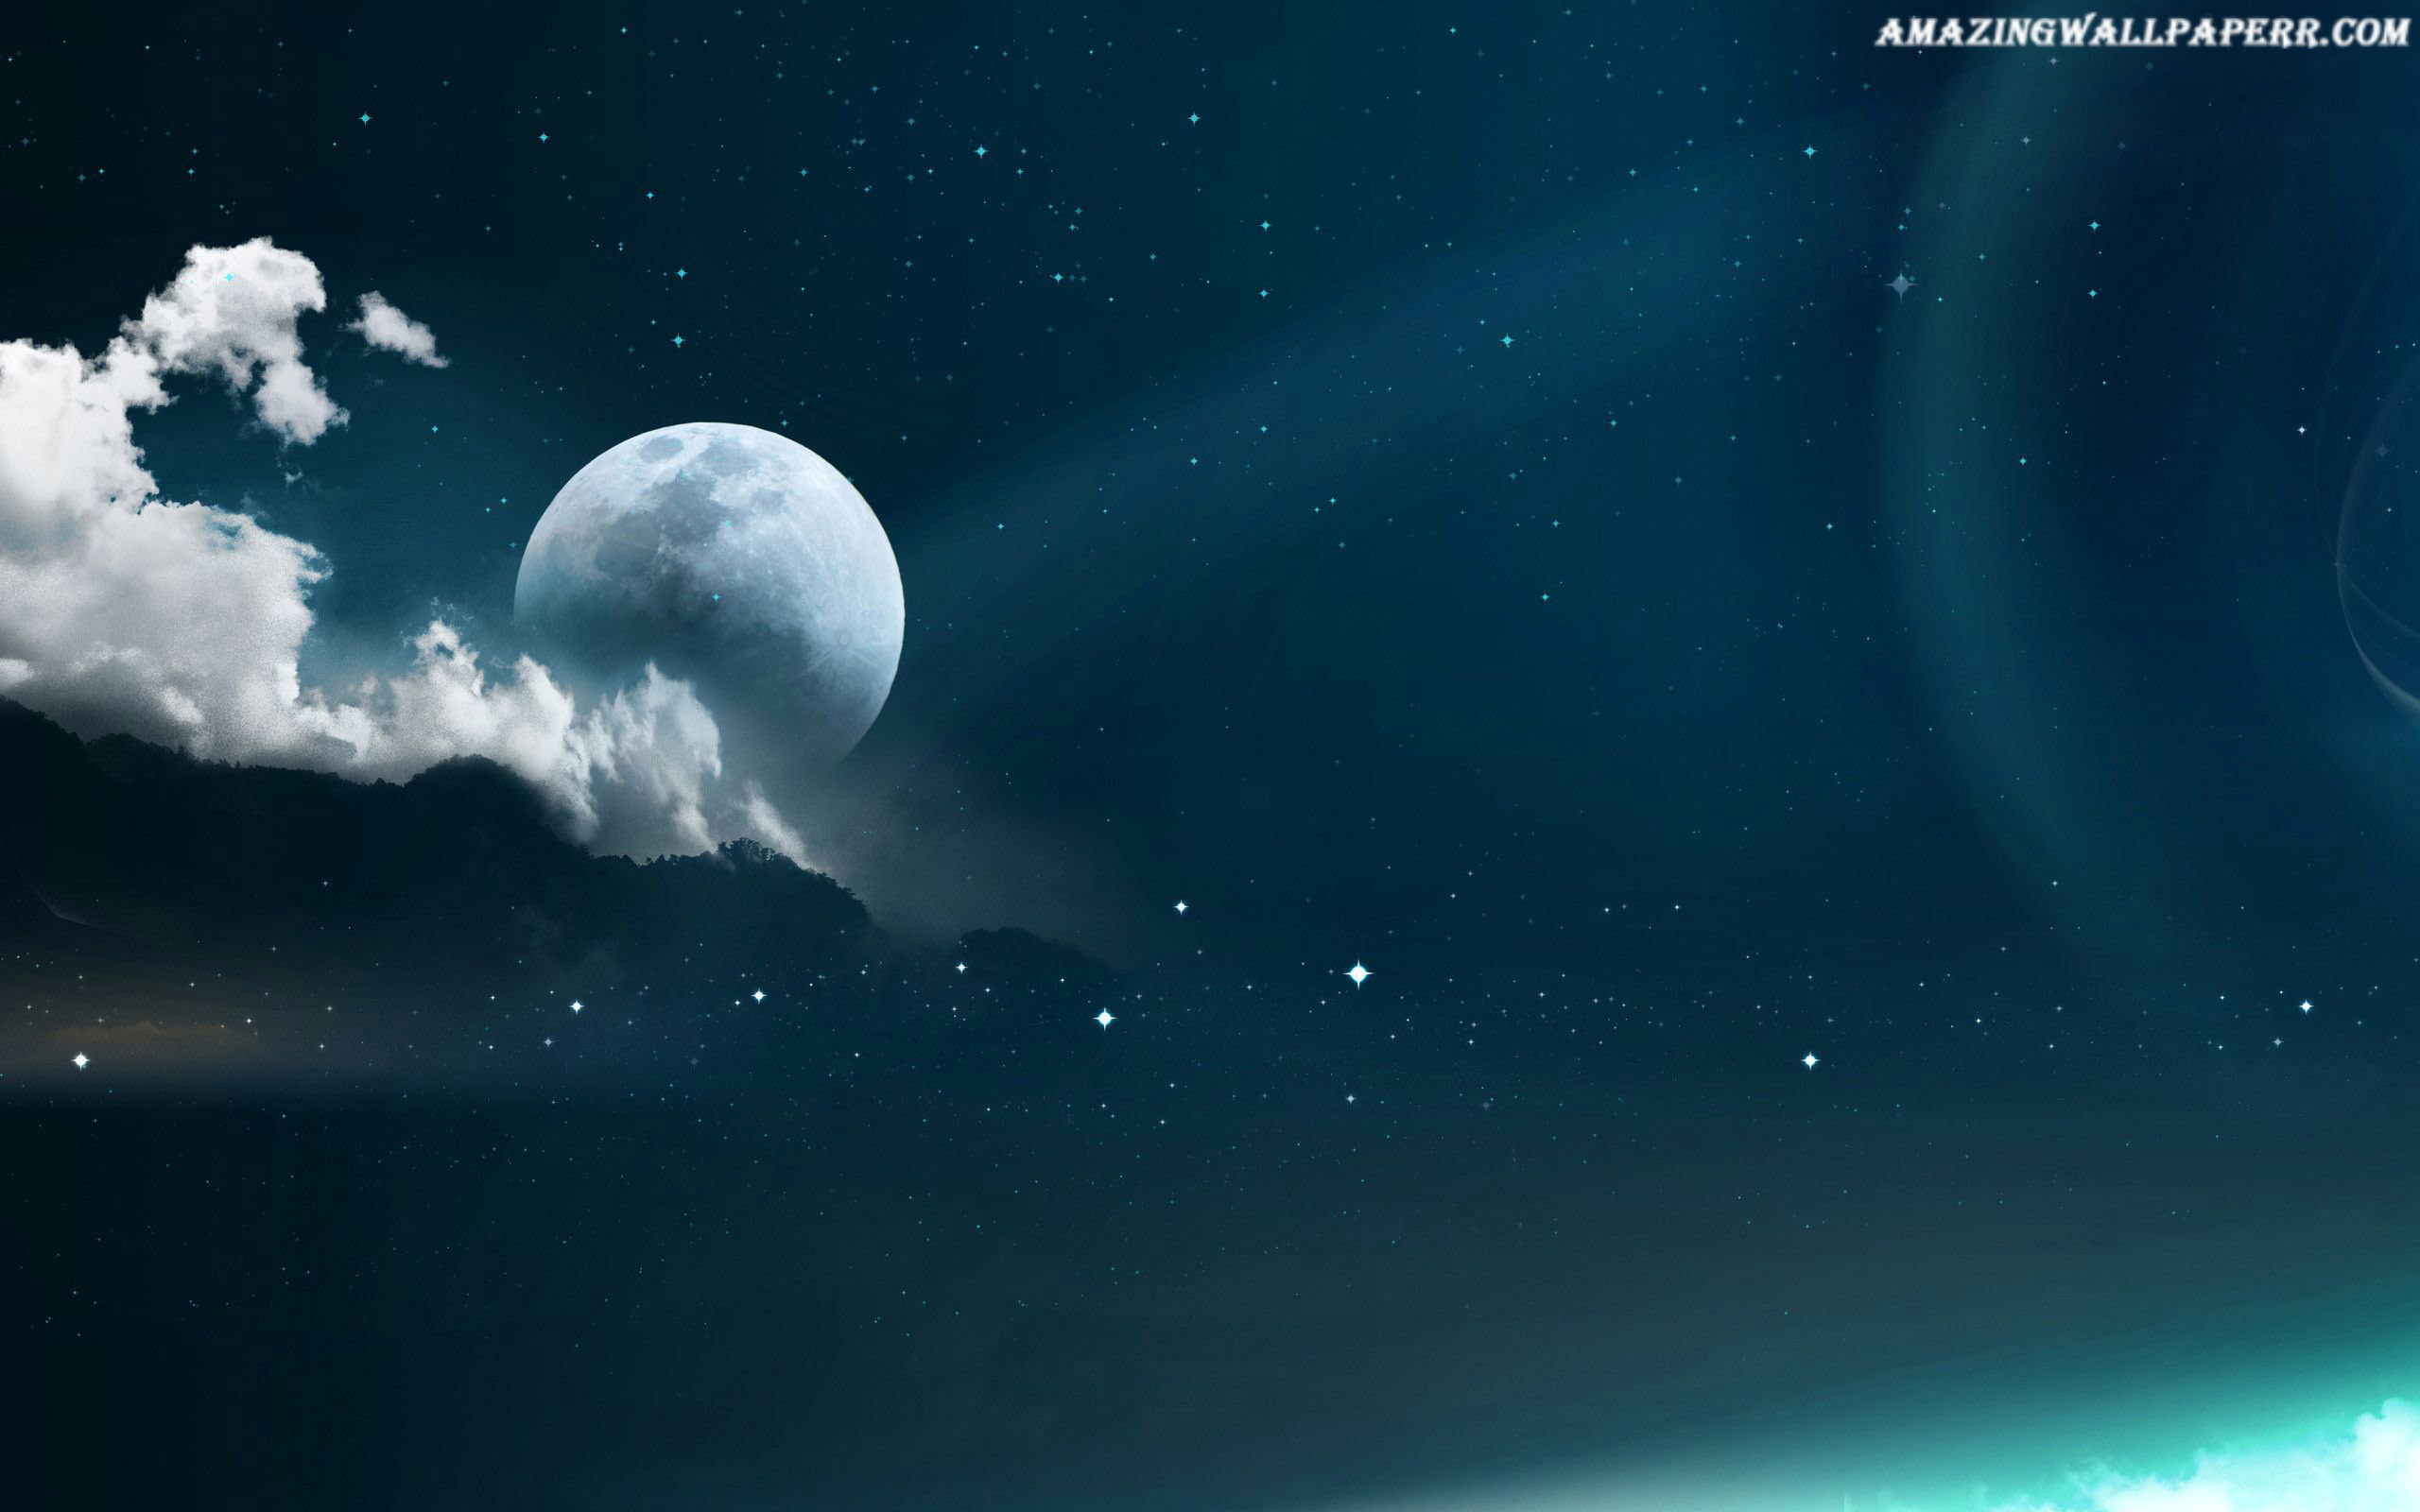 Outer Space Desktop Wallpaper by sheikhsherry44 Outer Space Desktop  Wallpaper by sheikhsherry44